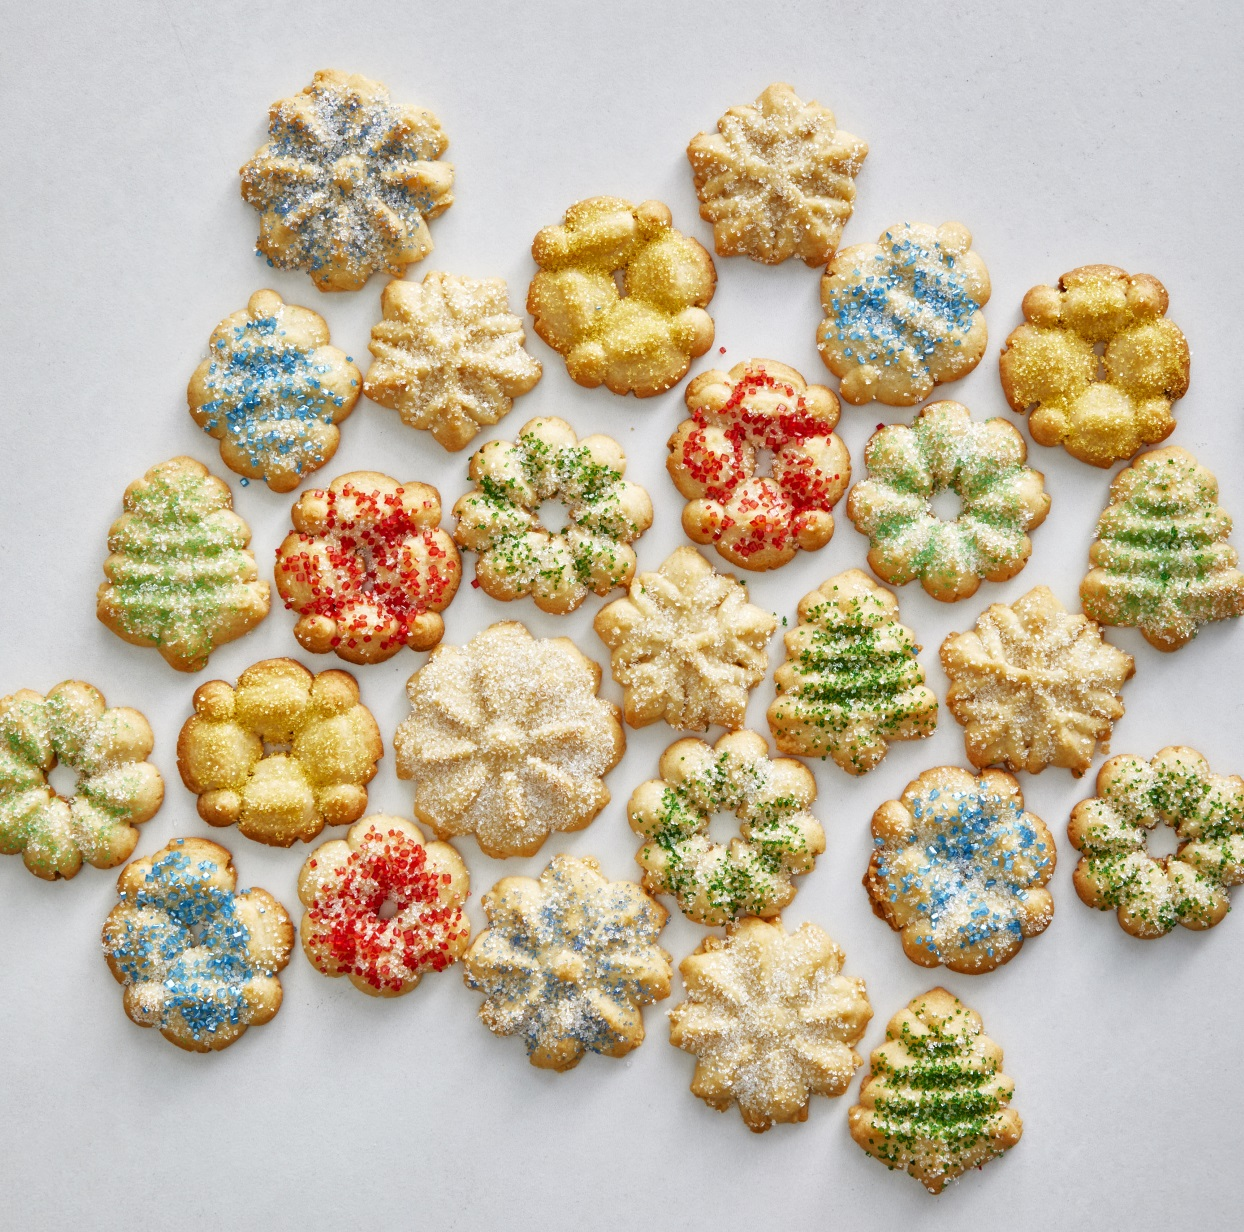 It's time to break out your spritz cookie press for these festive Christmas spritz cookies! These easy Christmas cookies can be decorated with sprinkles or flavored with citrus, spices or sweet sugar glaze. And if you're looking for healthy cookies, these fit the bill thanks to whole-wheat pastry flour that keeps their texture soft while giving them a boost of fiber.